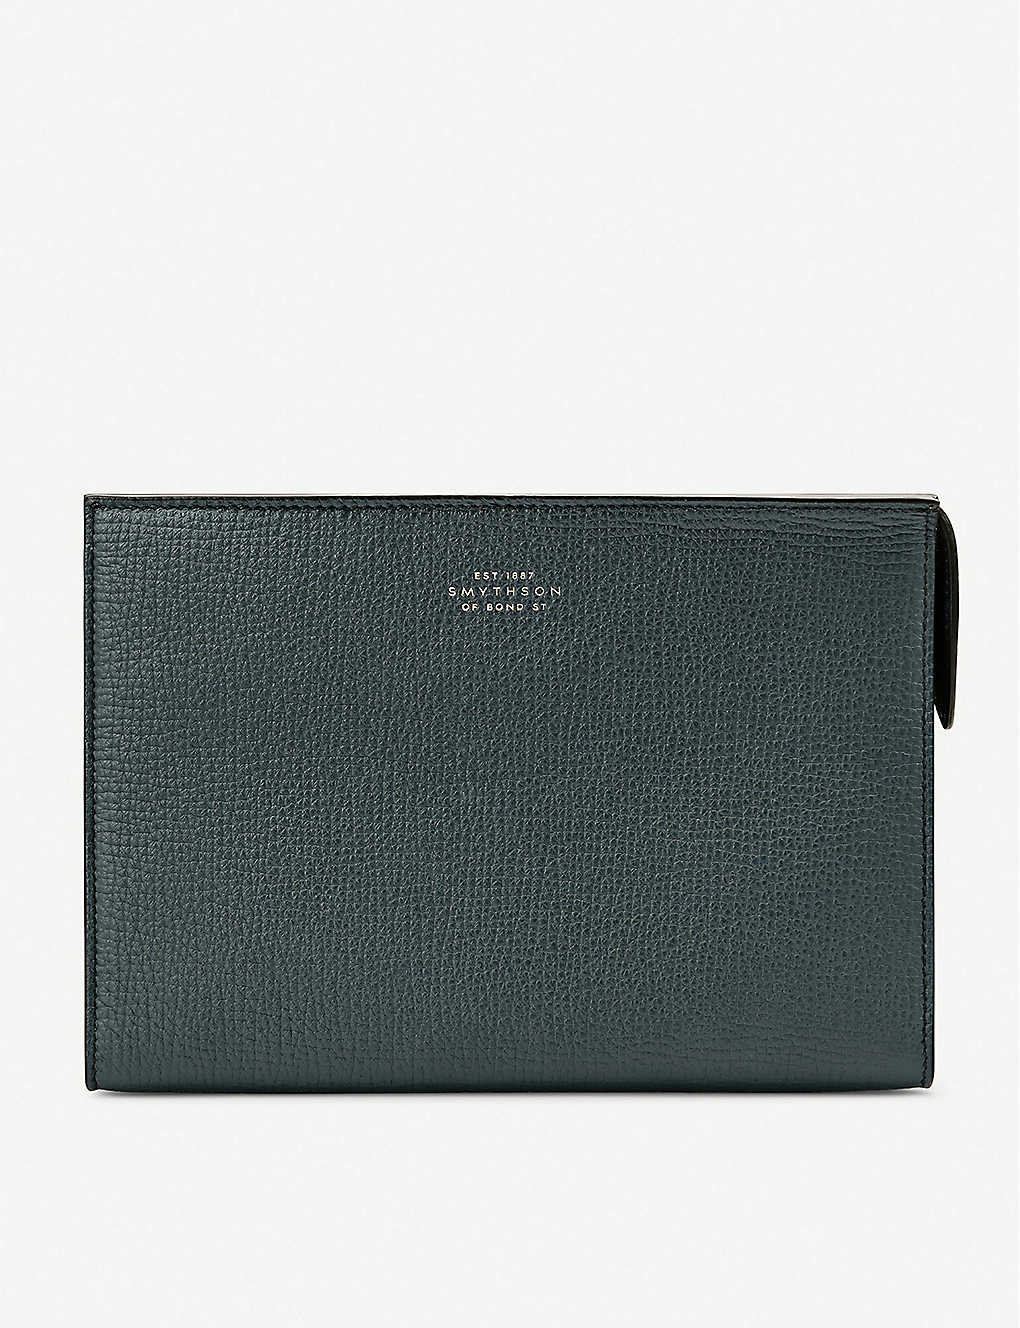 SMYTHSON: Grained leather wash bag 14.5cm x 21cm